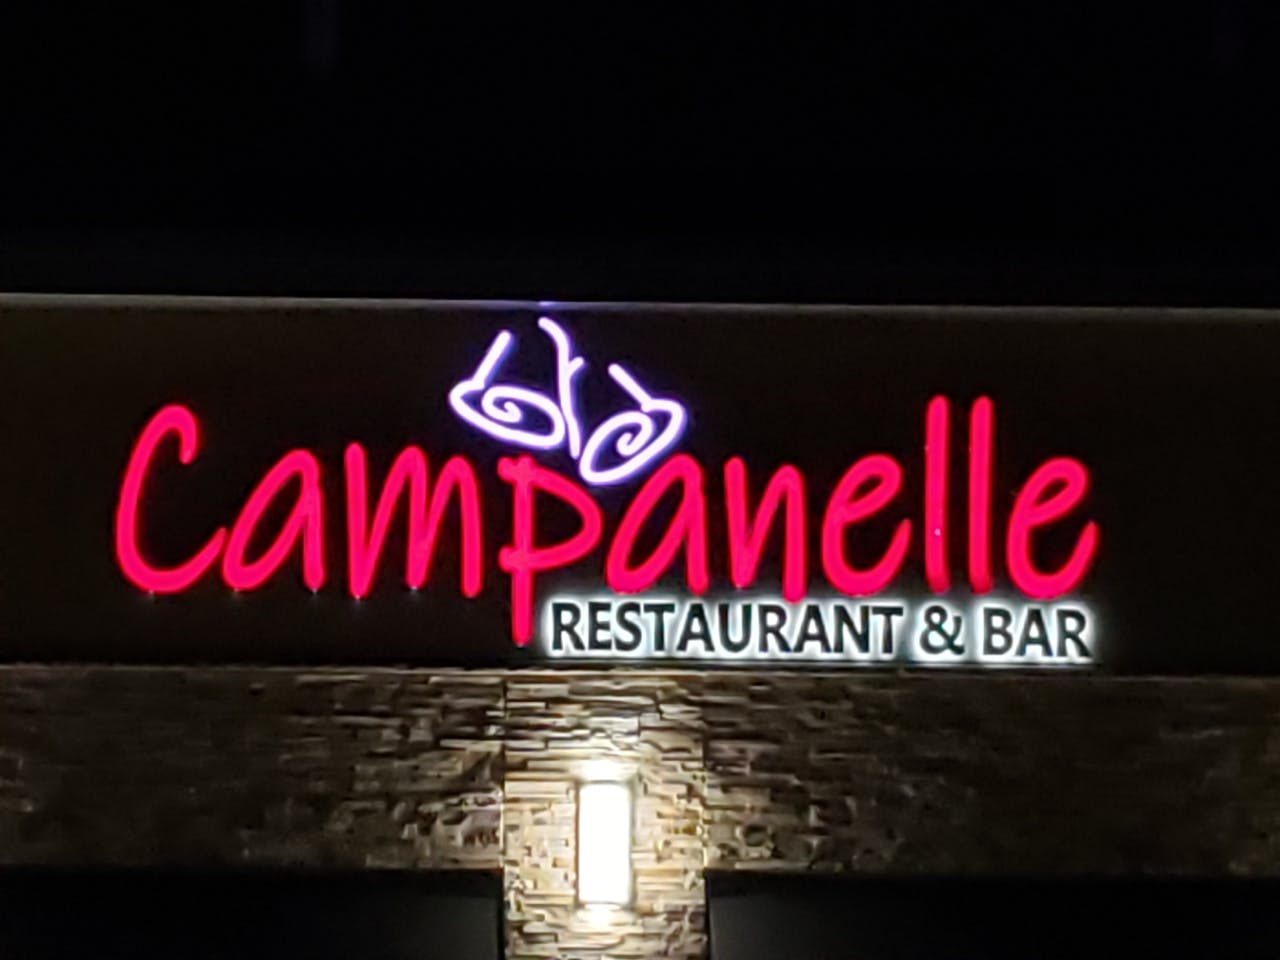 Campanelle sign